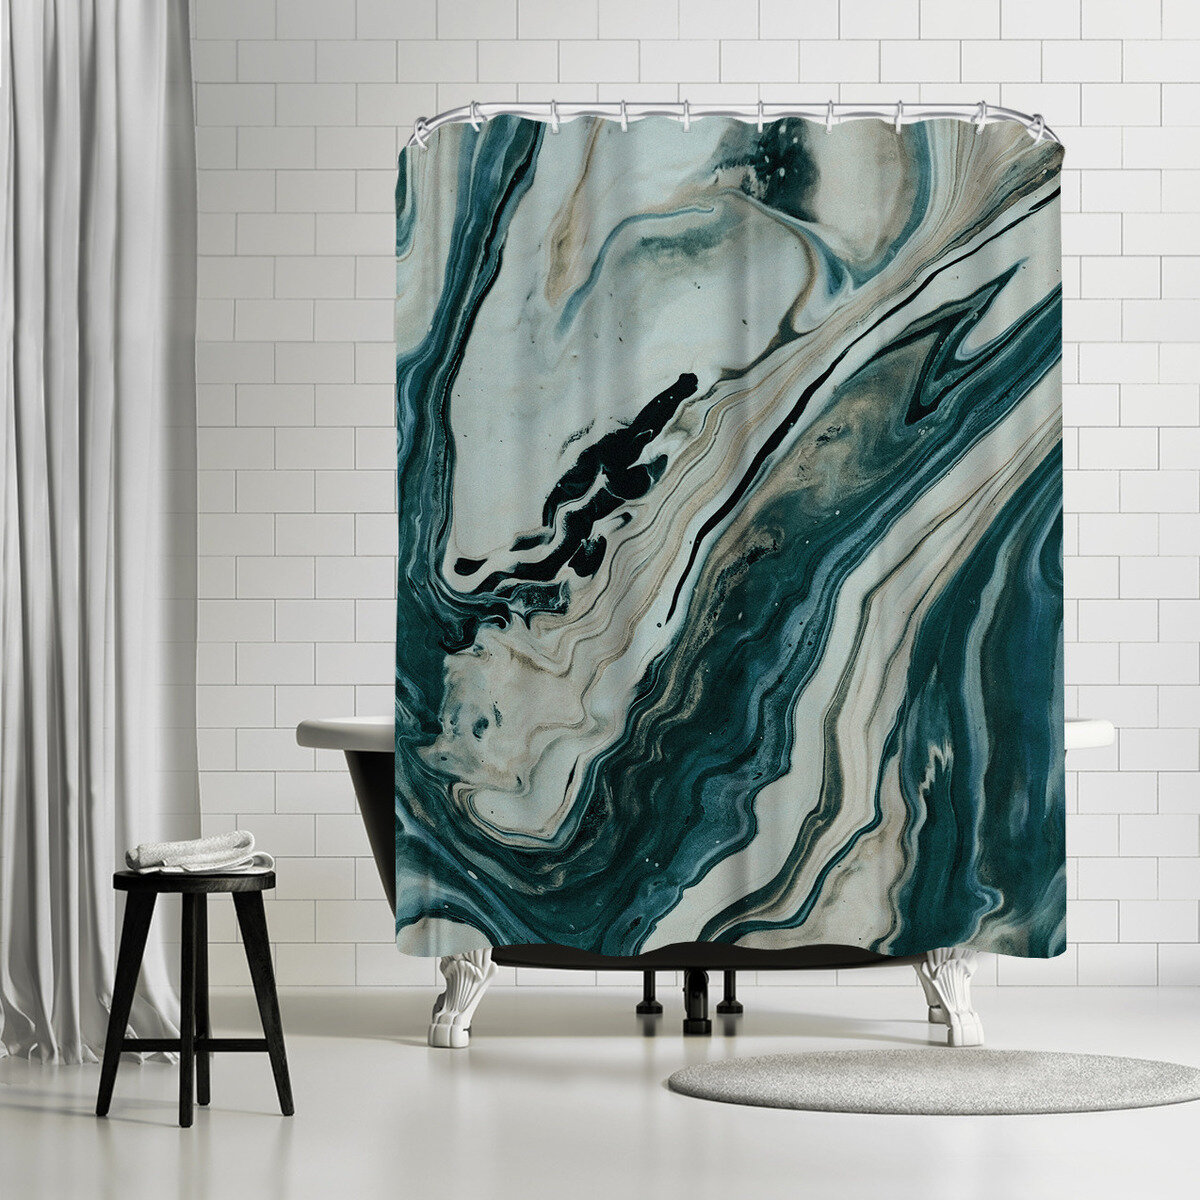 East Urban Home Leah Flores Tranquil Arctic Marble Single Shower Curtain Wayfair